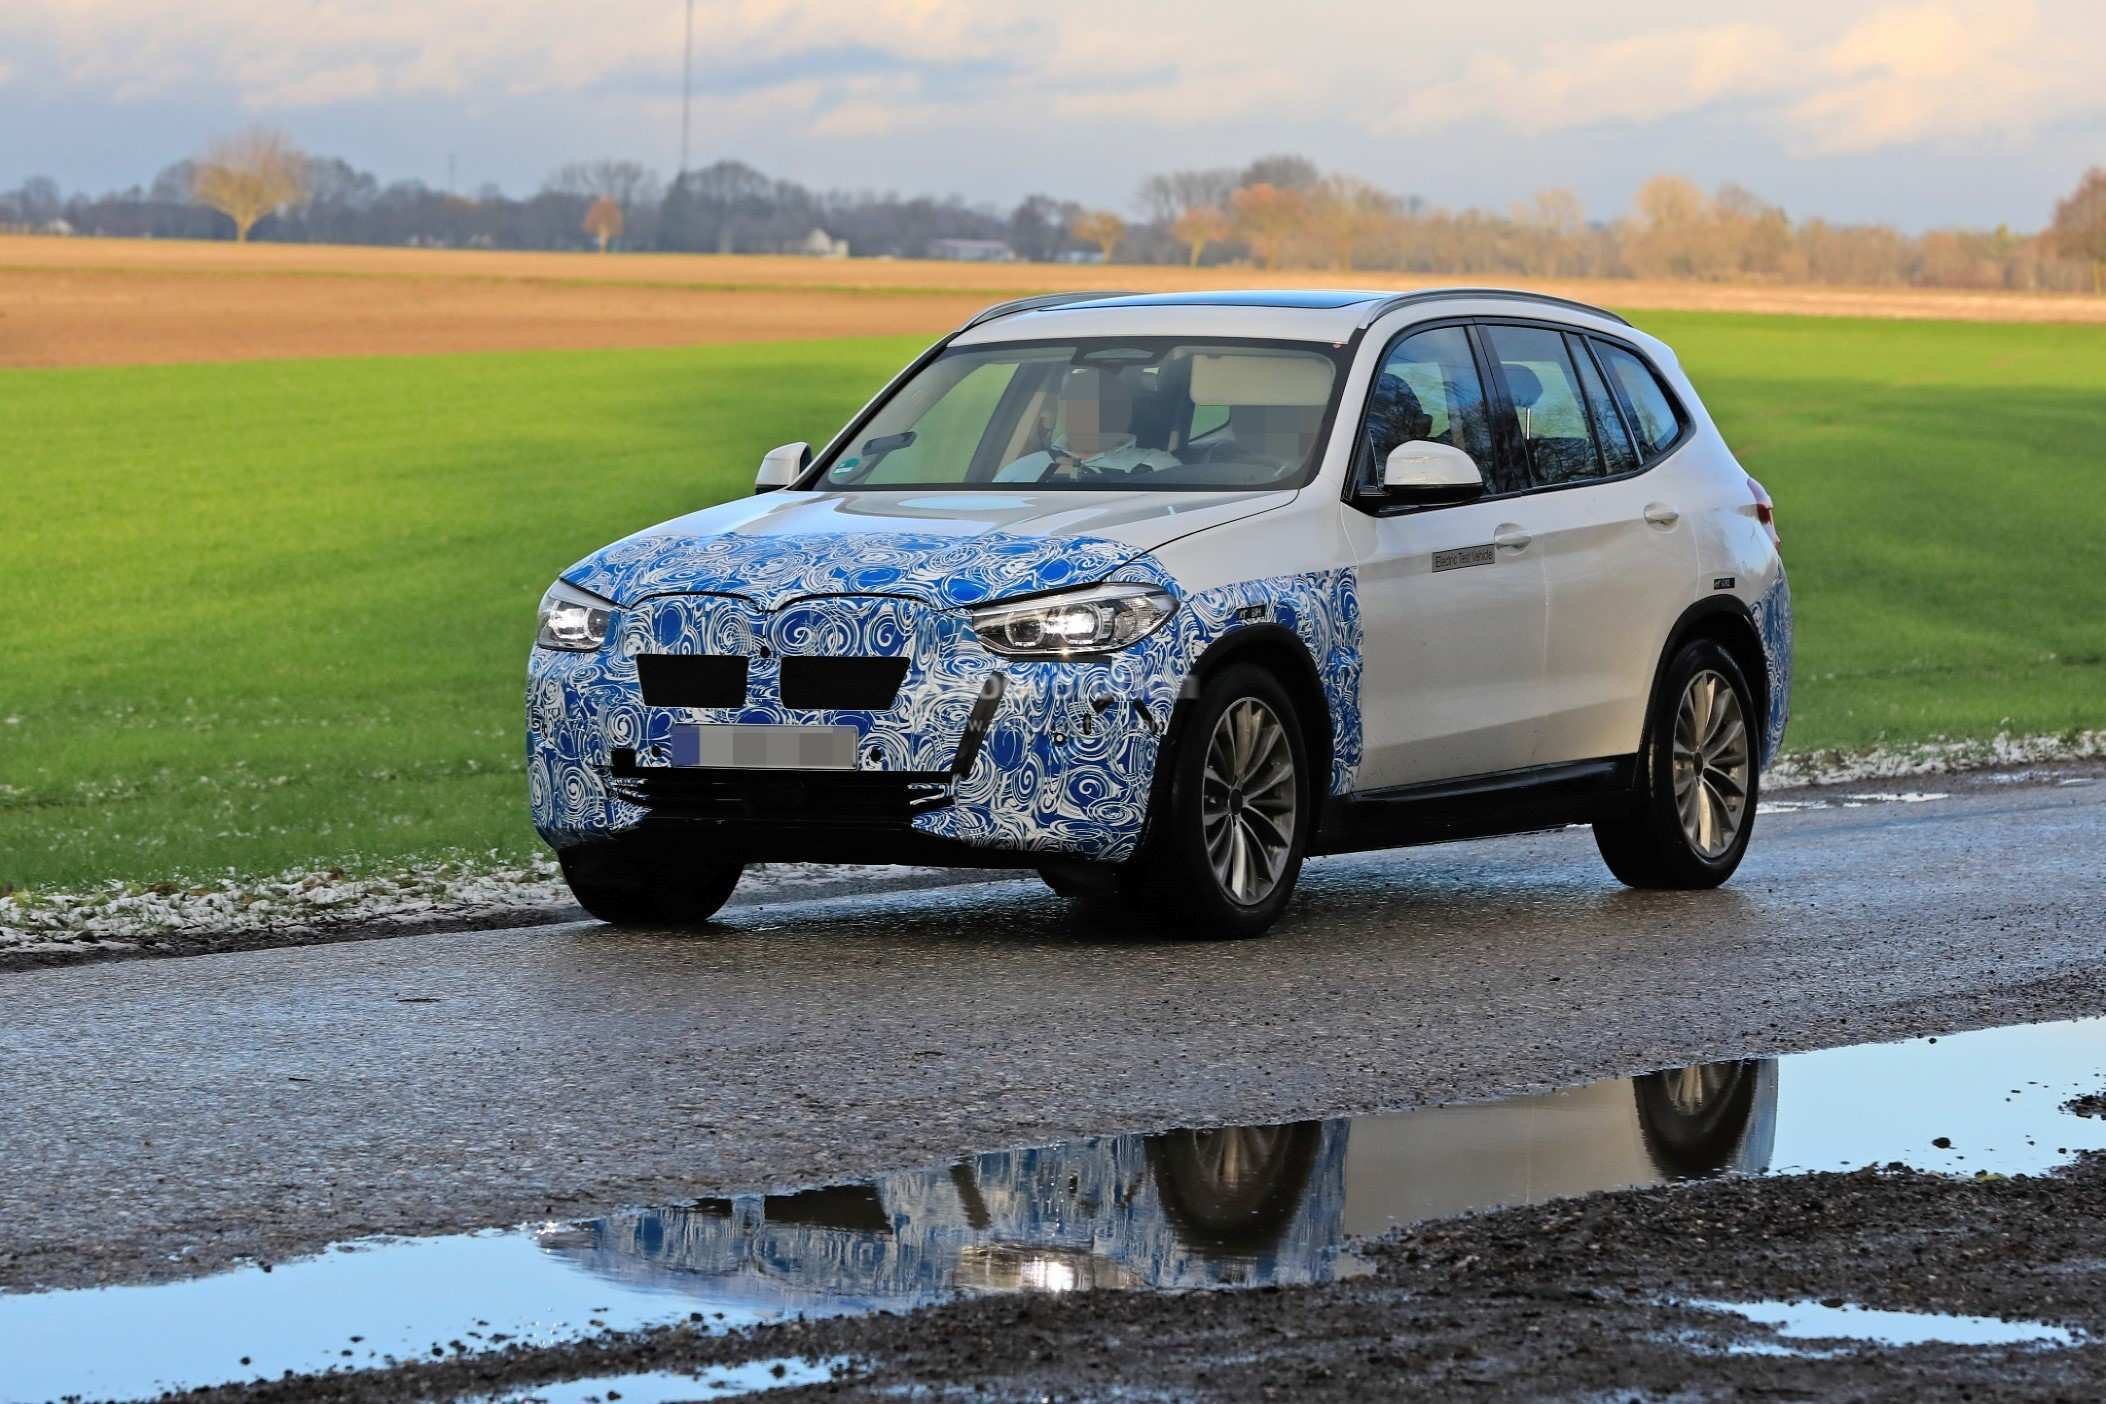 48 Great 2020 BMW Tailgate Interior with 2020 BMW Tailgate